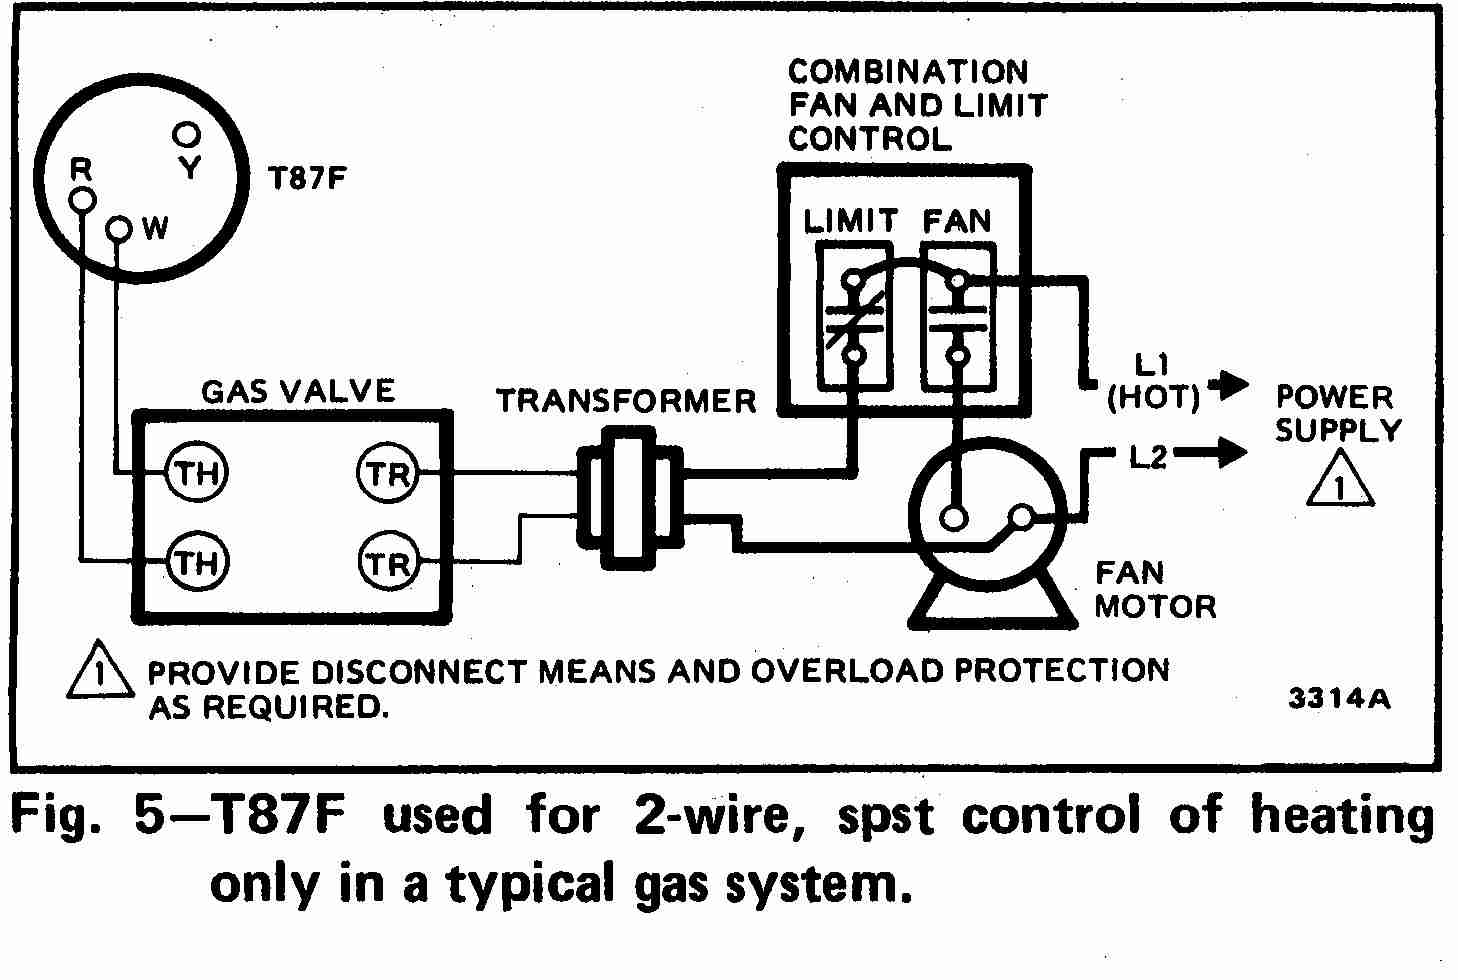 TT_T87F_0002_2Wg_DJF guide to wiring connections for room thermostats Lux 500 Thermostat User Manual at crackthecode.co